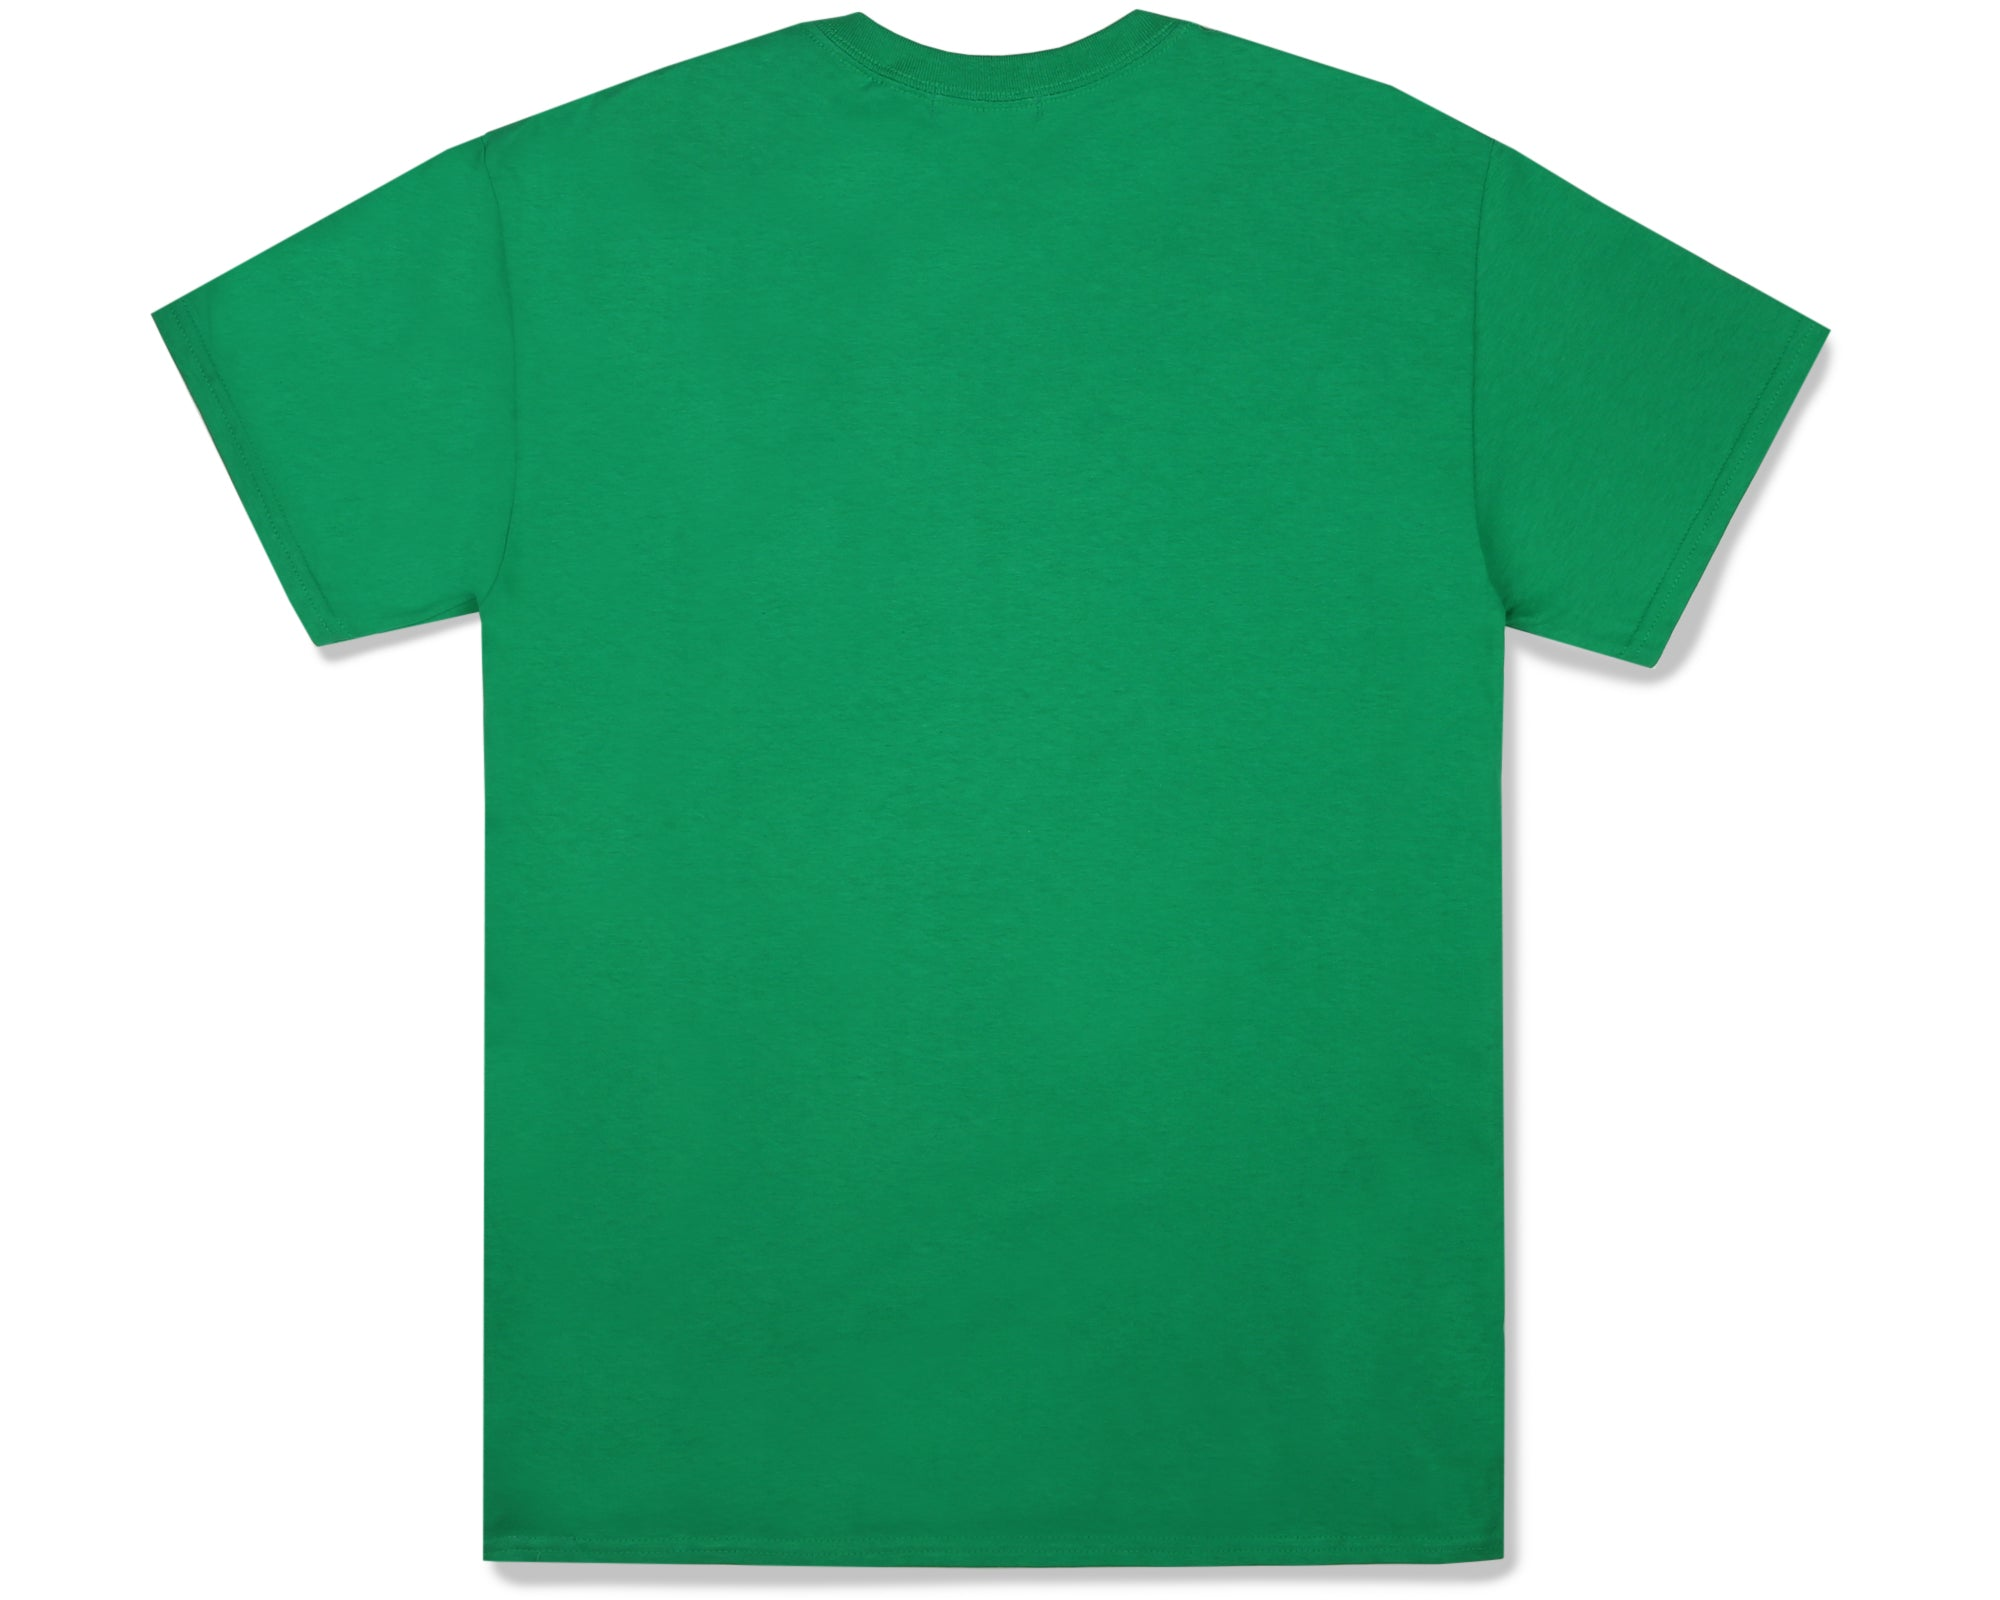 IC YOPPI T-SHIRT - GREEN